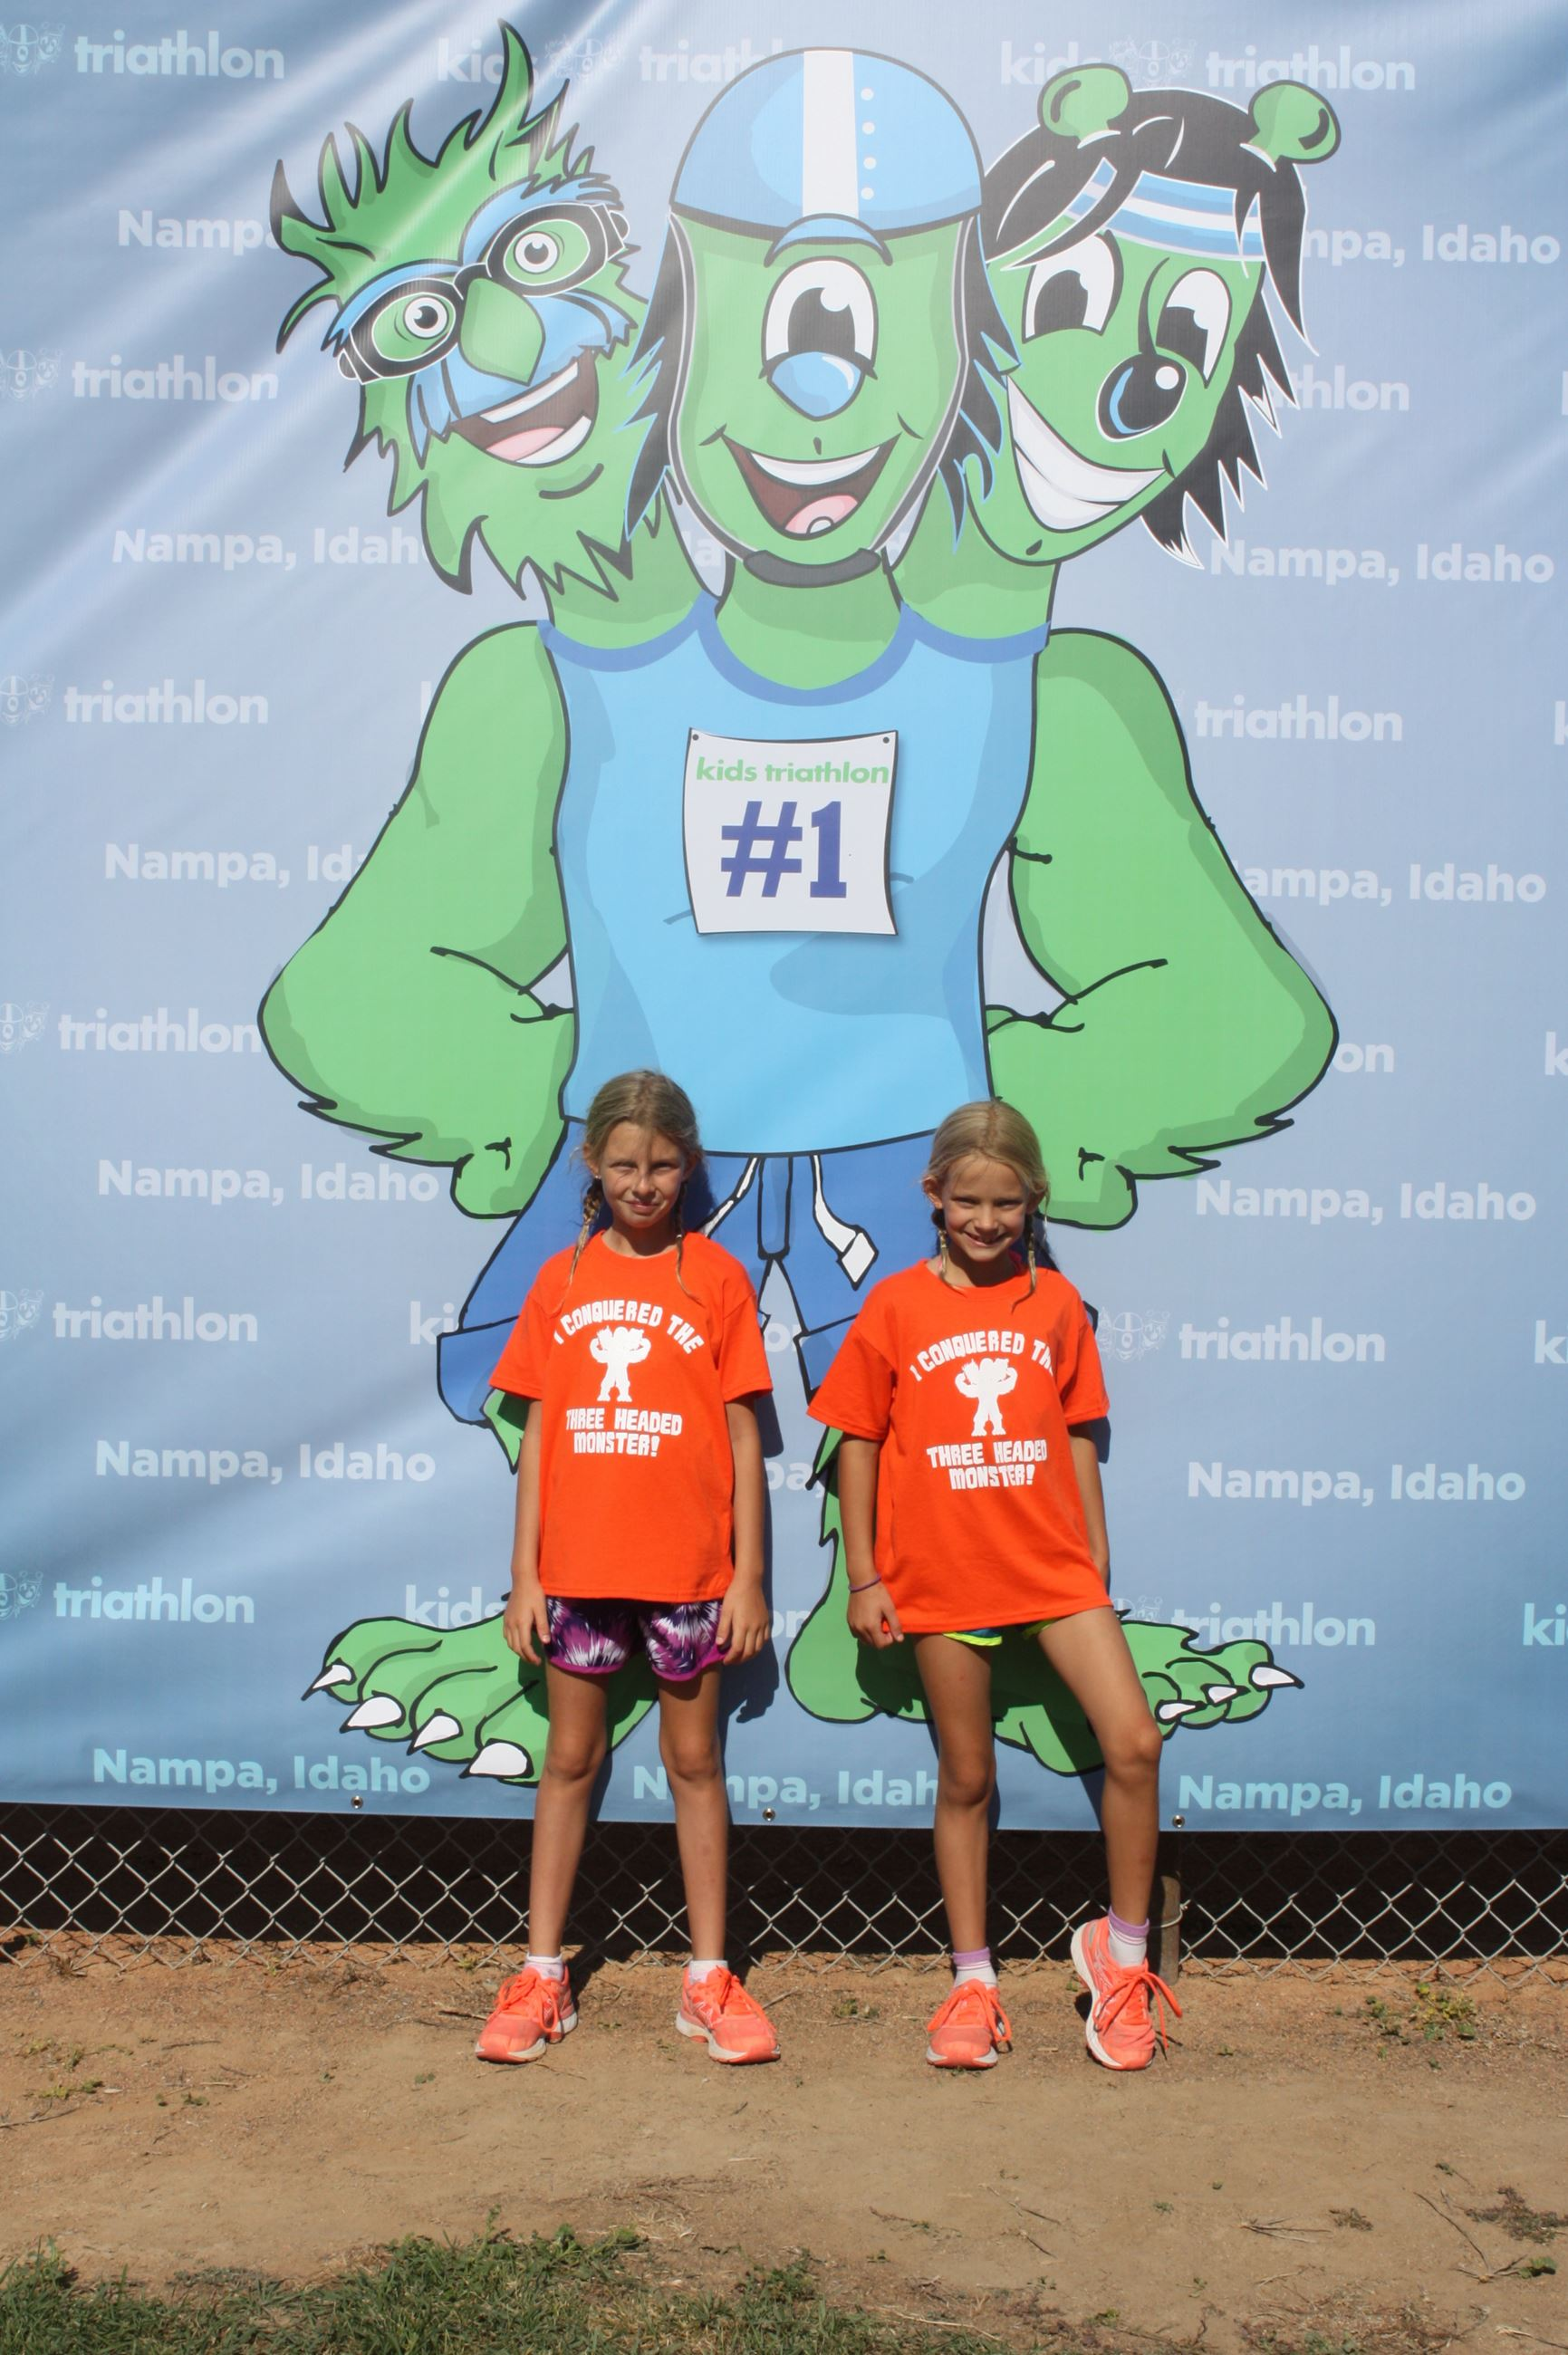 Two girls in front of monster banner at the Kids Triathlon